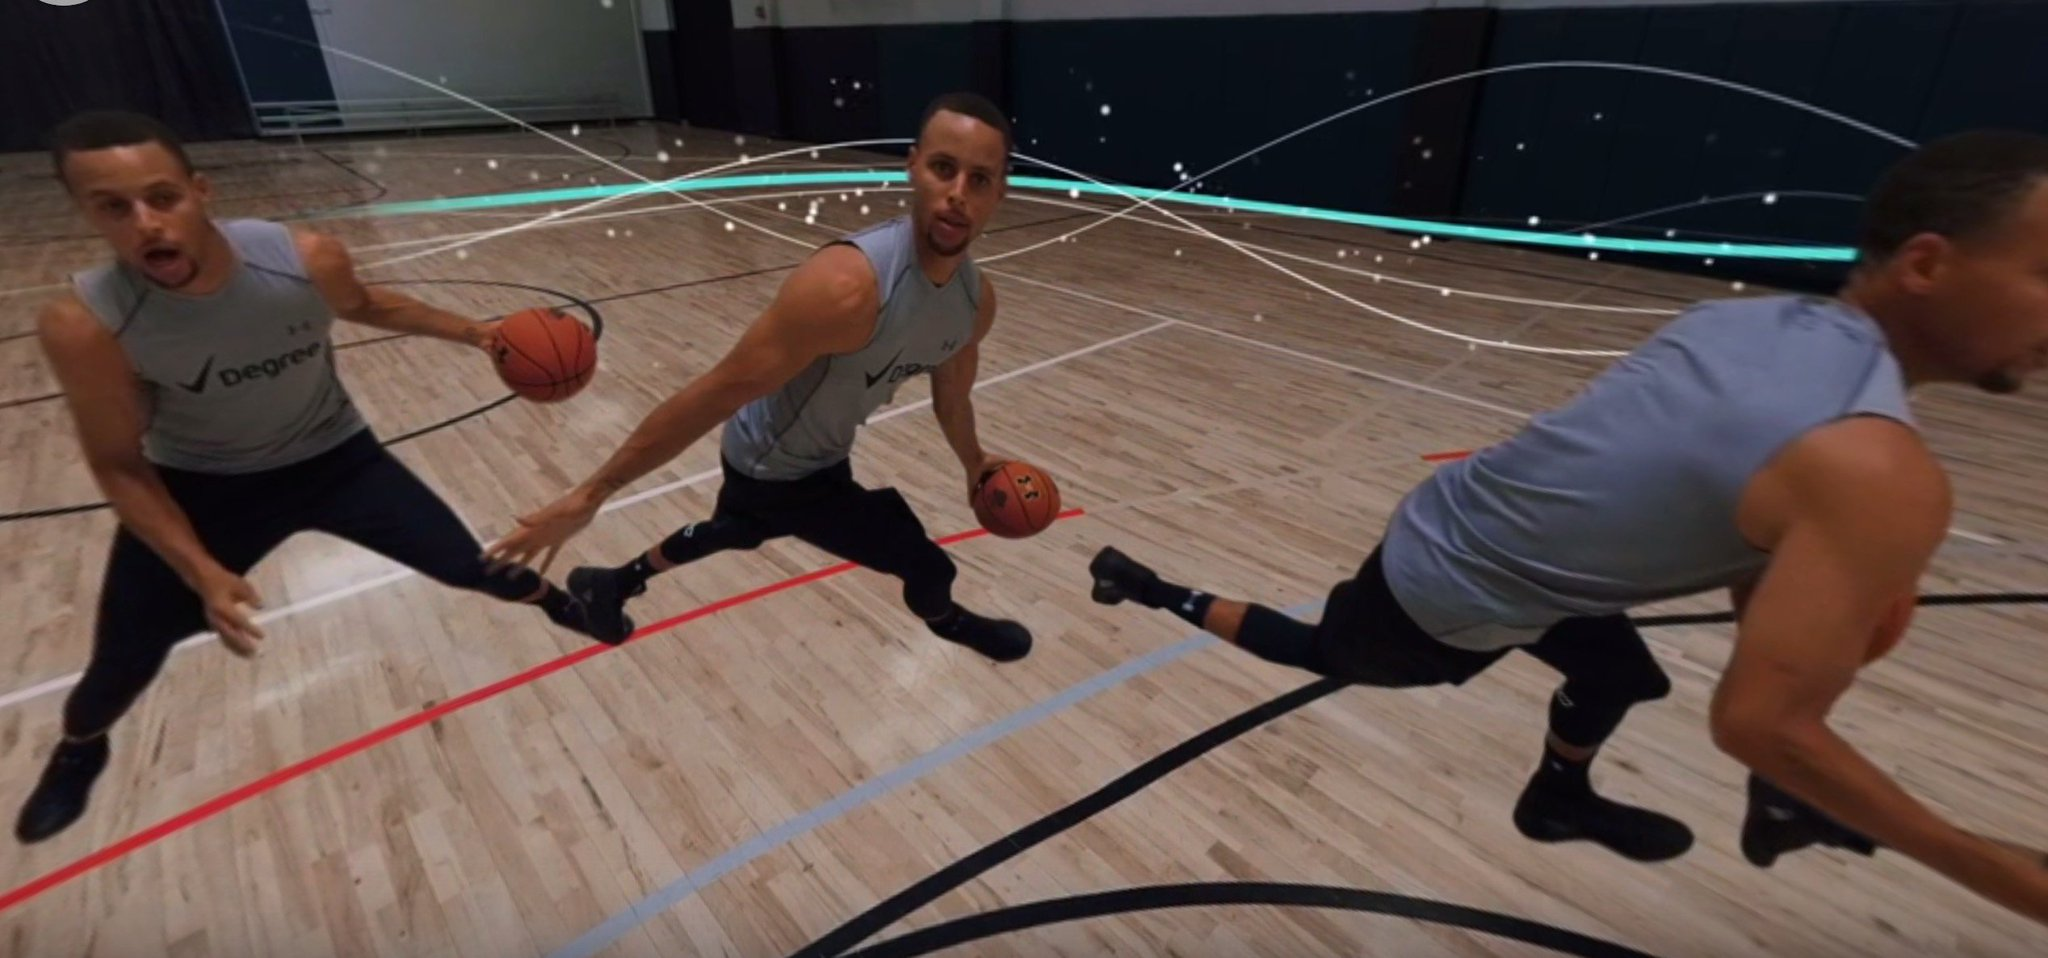 Get on the court with @StephenCurry30 in this 360° video. #RedefineWhatsPossible https://t.co/lpdIjdG1U9